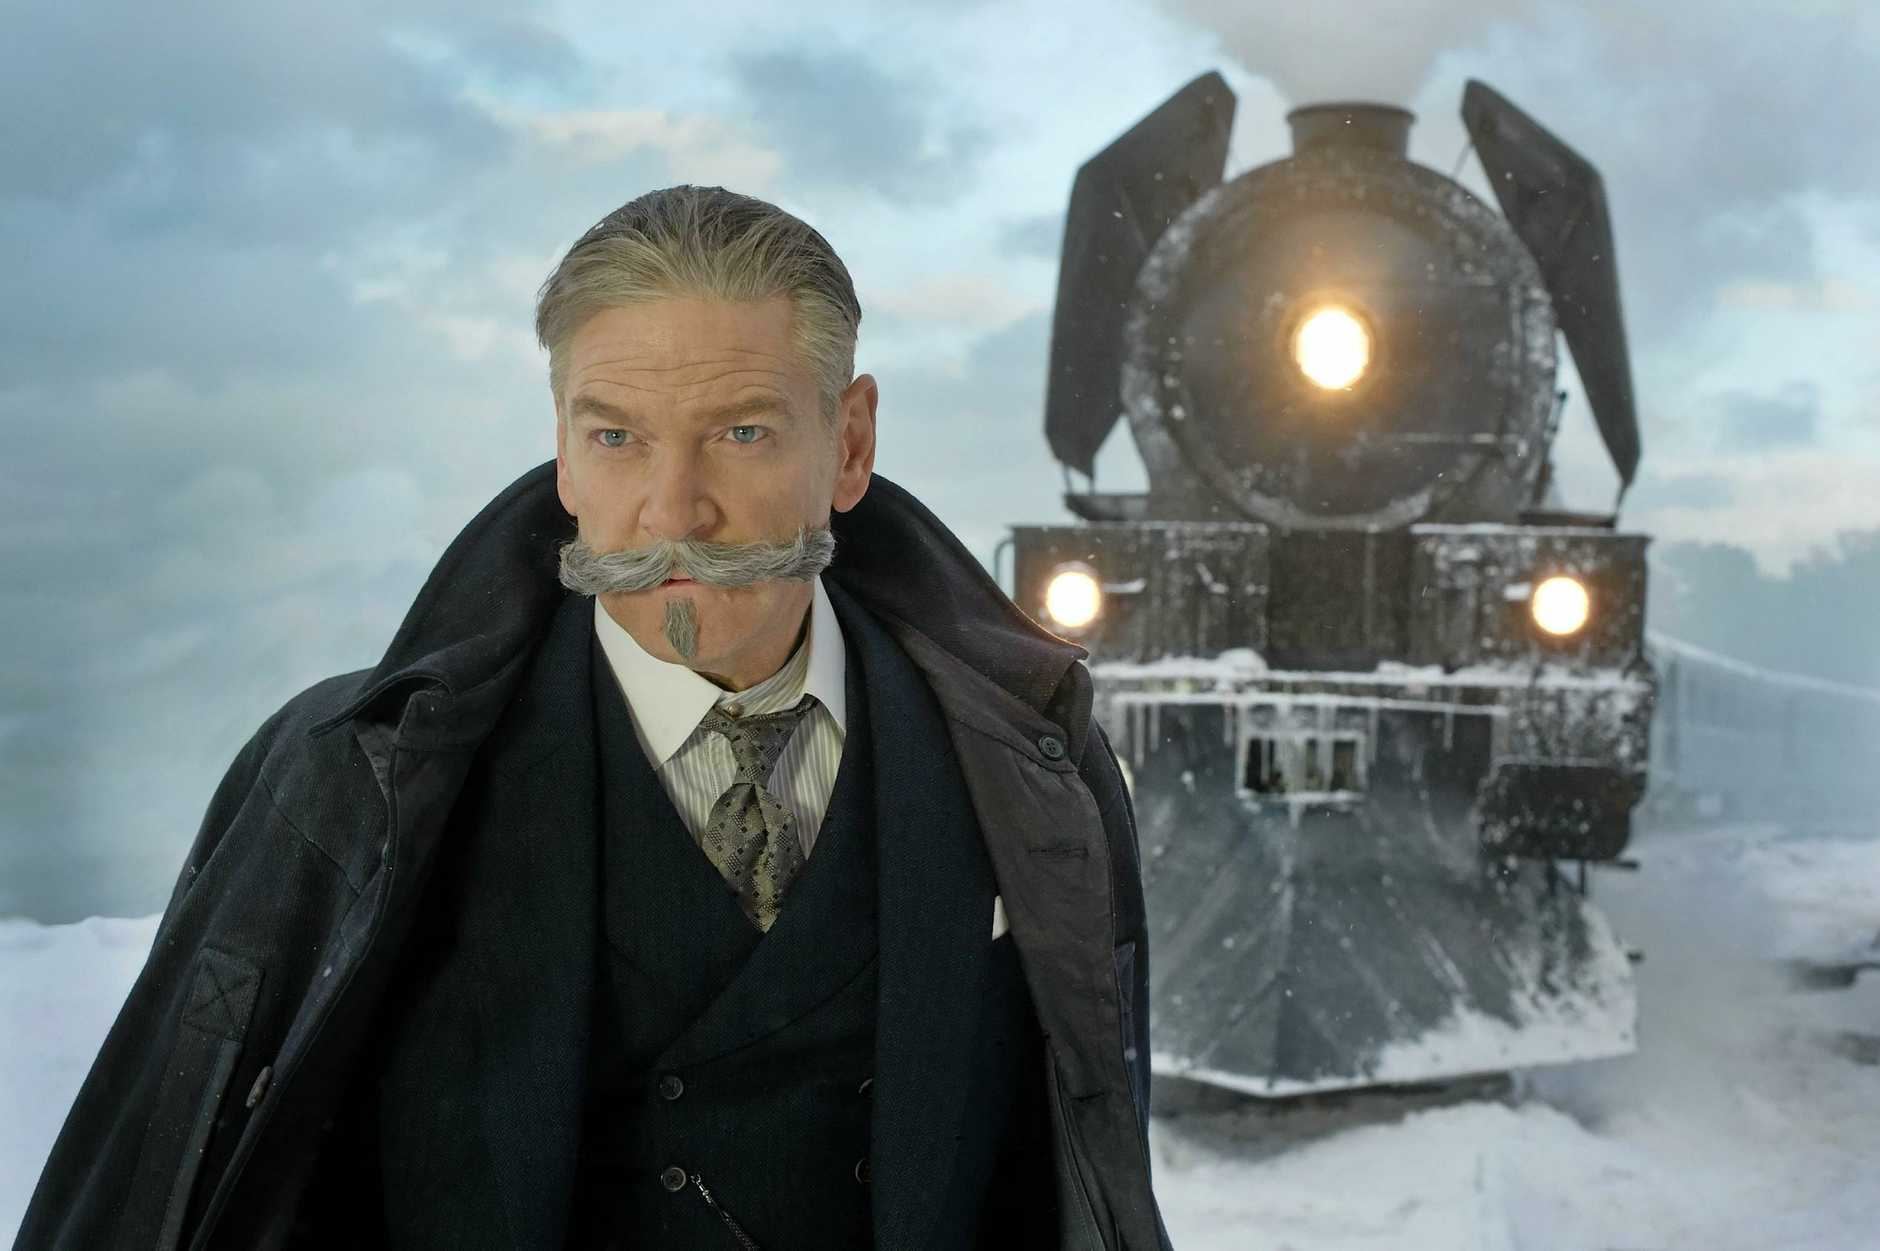 FOR REVIEW AND PREVIEW PURPOSES ONLY. Kenneth Branagh stars in the movie Murder on the Orient Express. Supplied by Twentieth Century Fox.